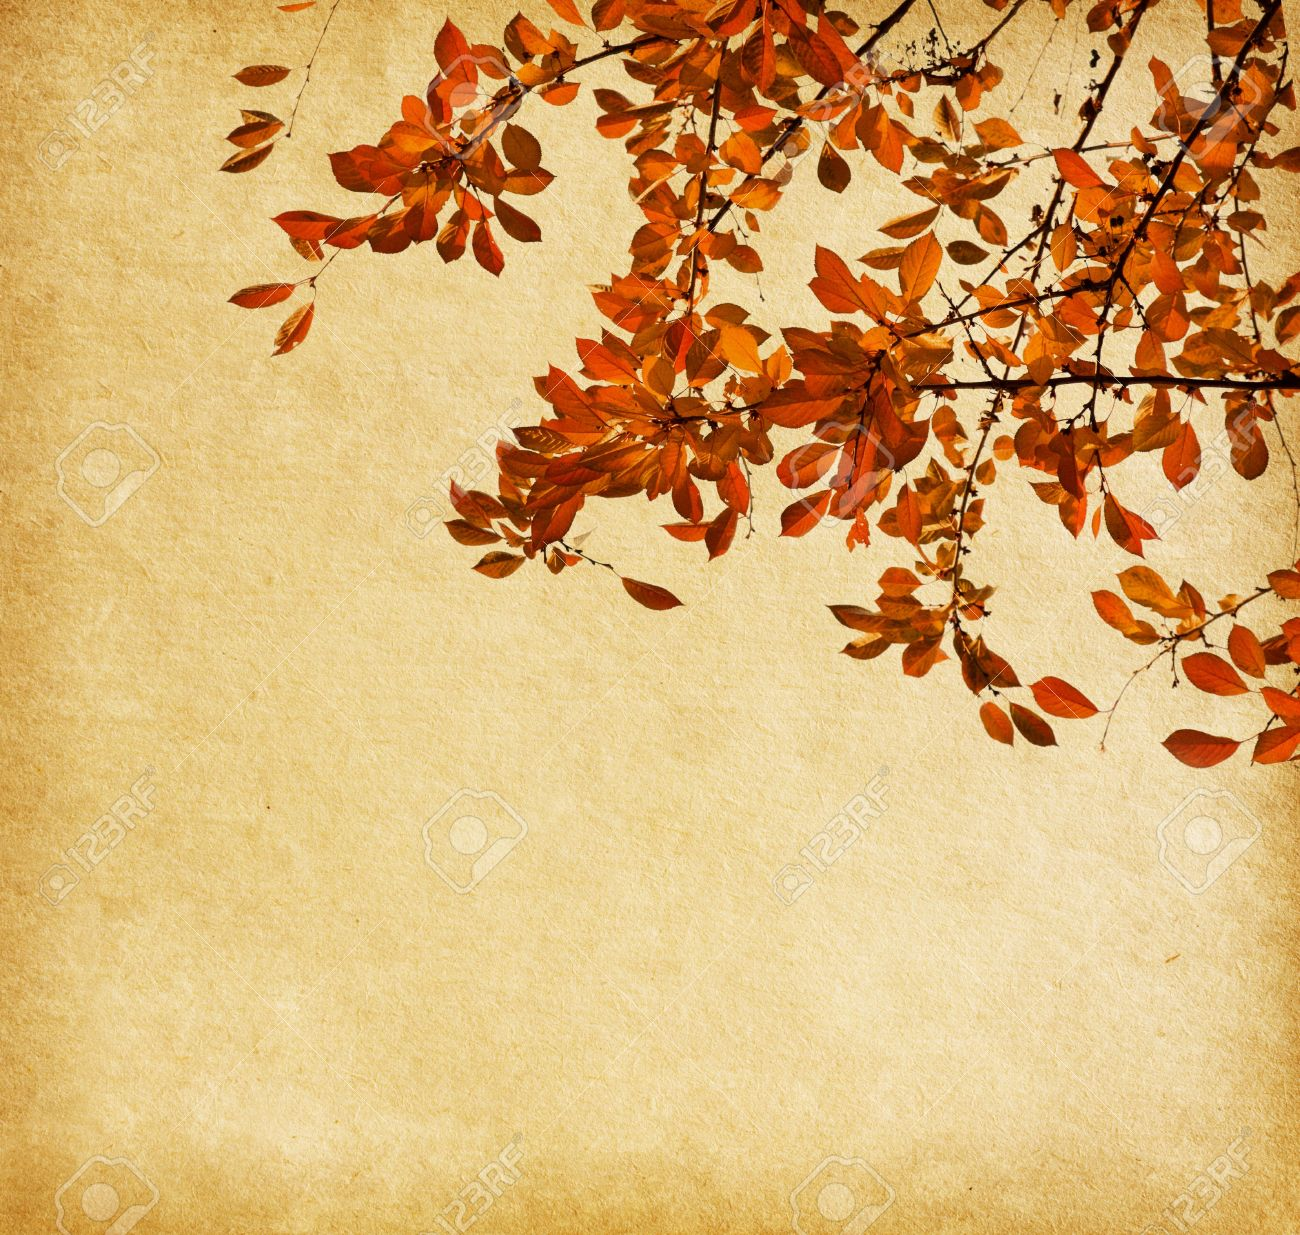 Old paper with branch of autumn leaves  Cherry plum Stock Photo - 14983862